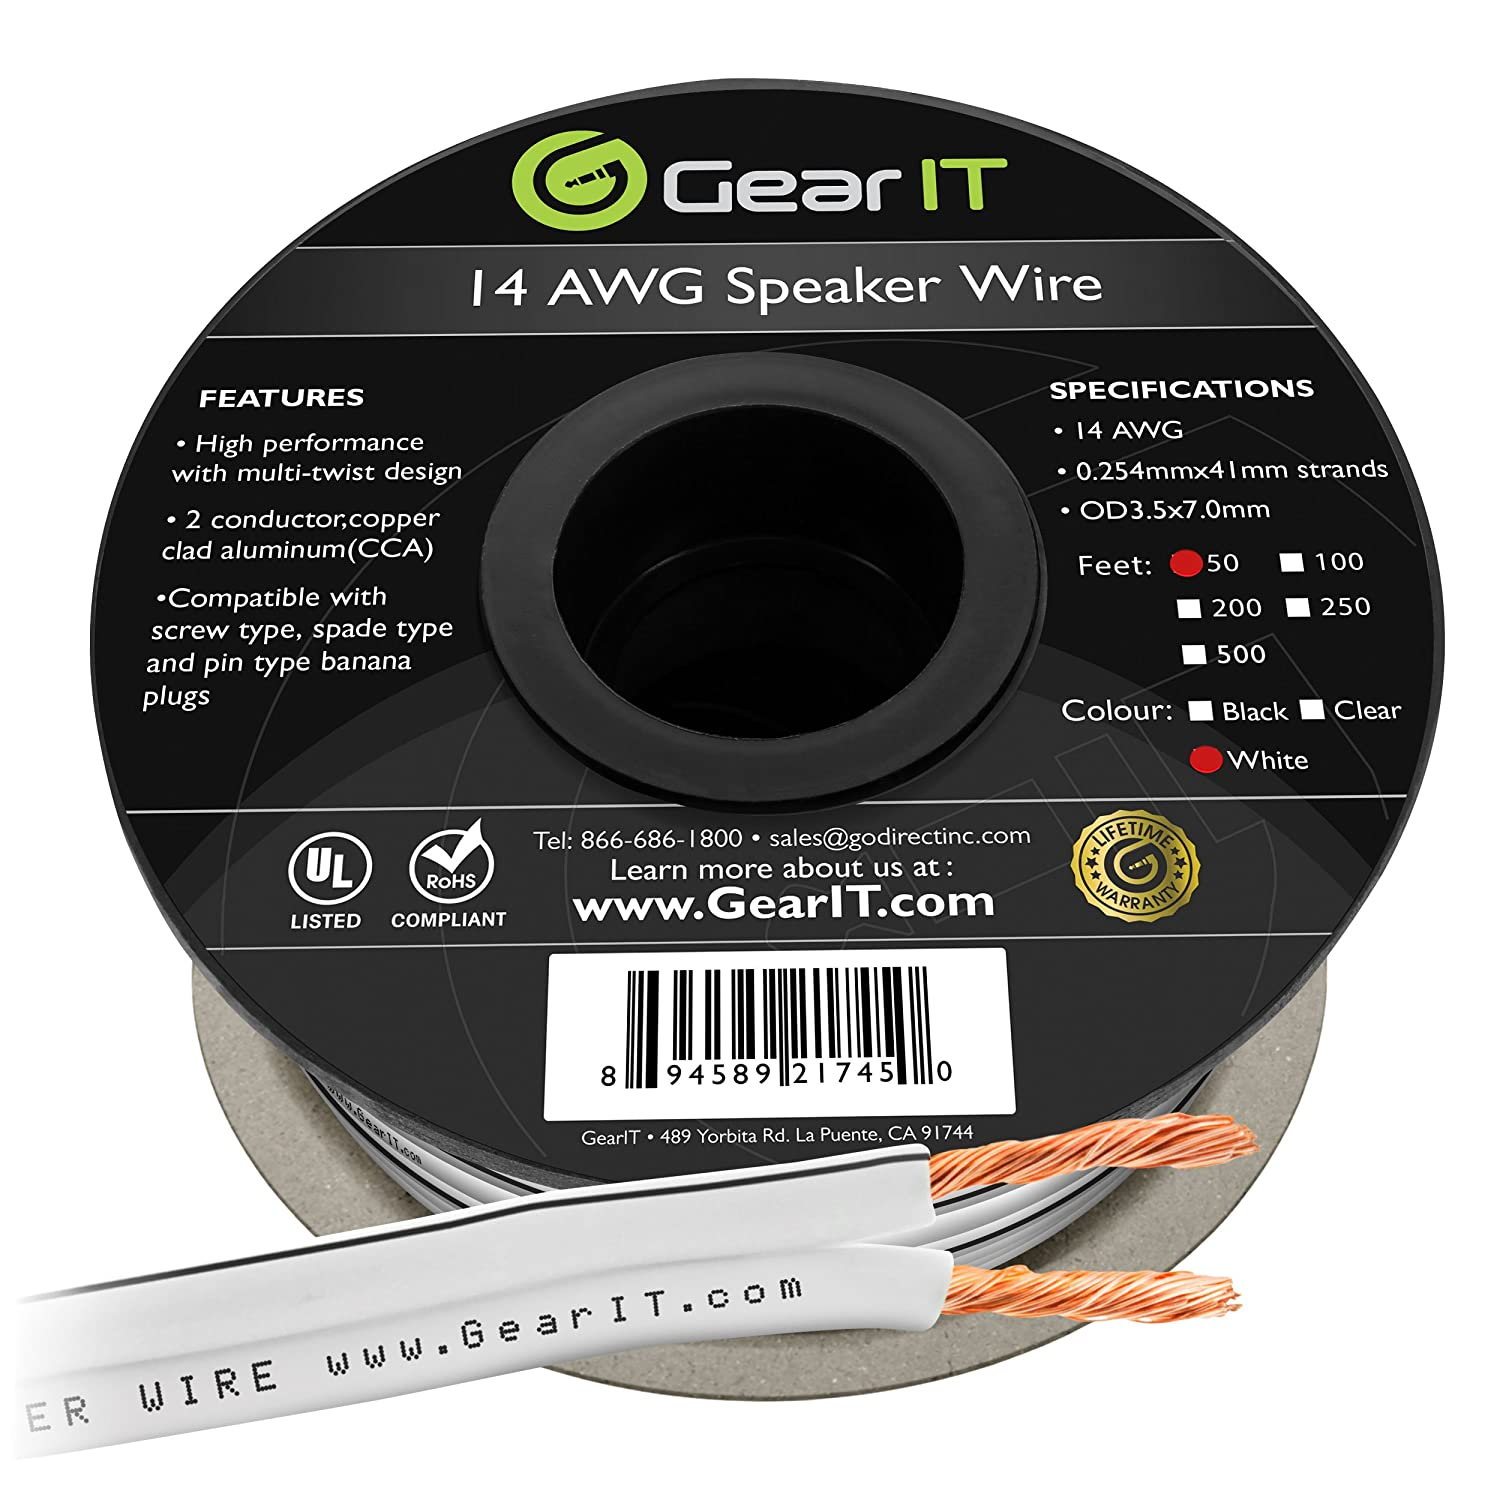 14awg Speaker Wire Gearit Pro Series 14 Awg Gauge Wiring Outdoor Speakers To Stereo Receiver 4 In Cable 50 Feet 1524 Meters Great Use For Home Theater And Car